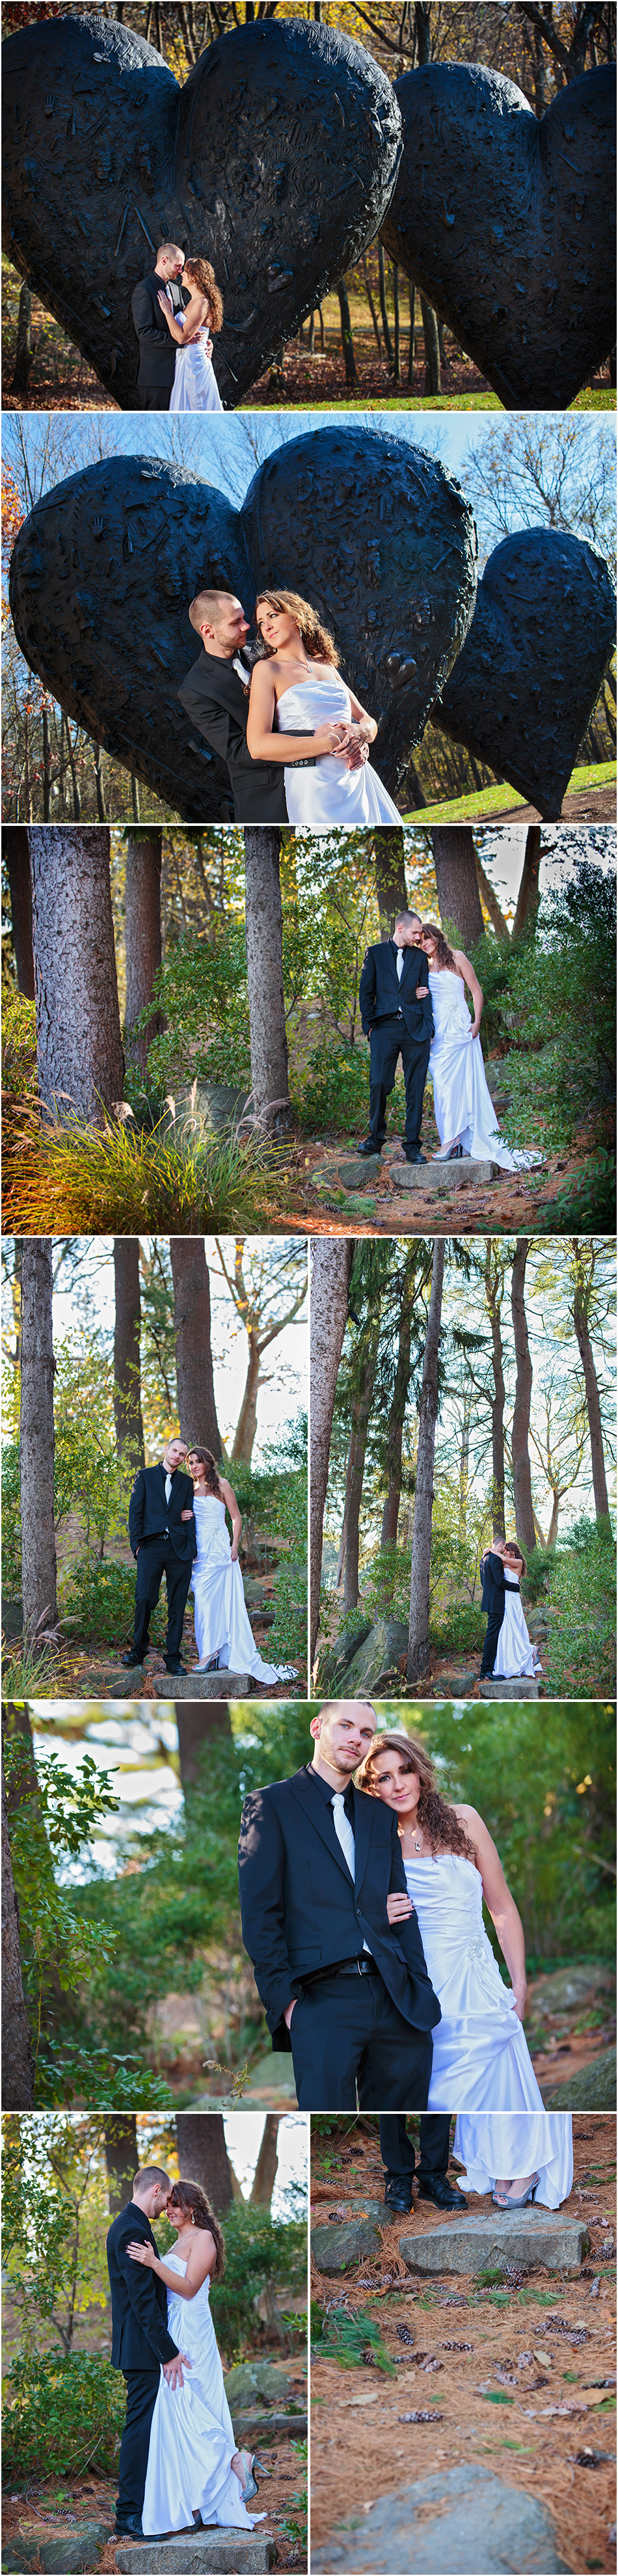 WEDDING PHOTOS AT DECORDOVA MUSEUM LINCOLN MA